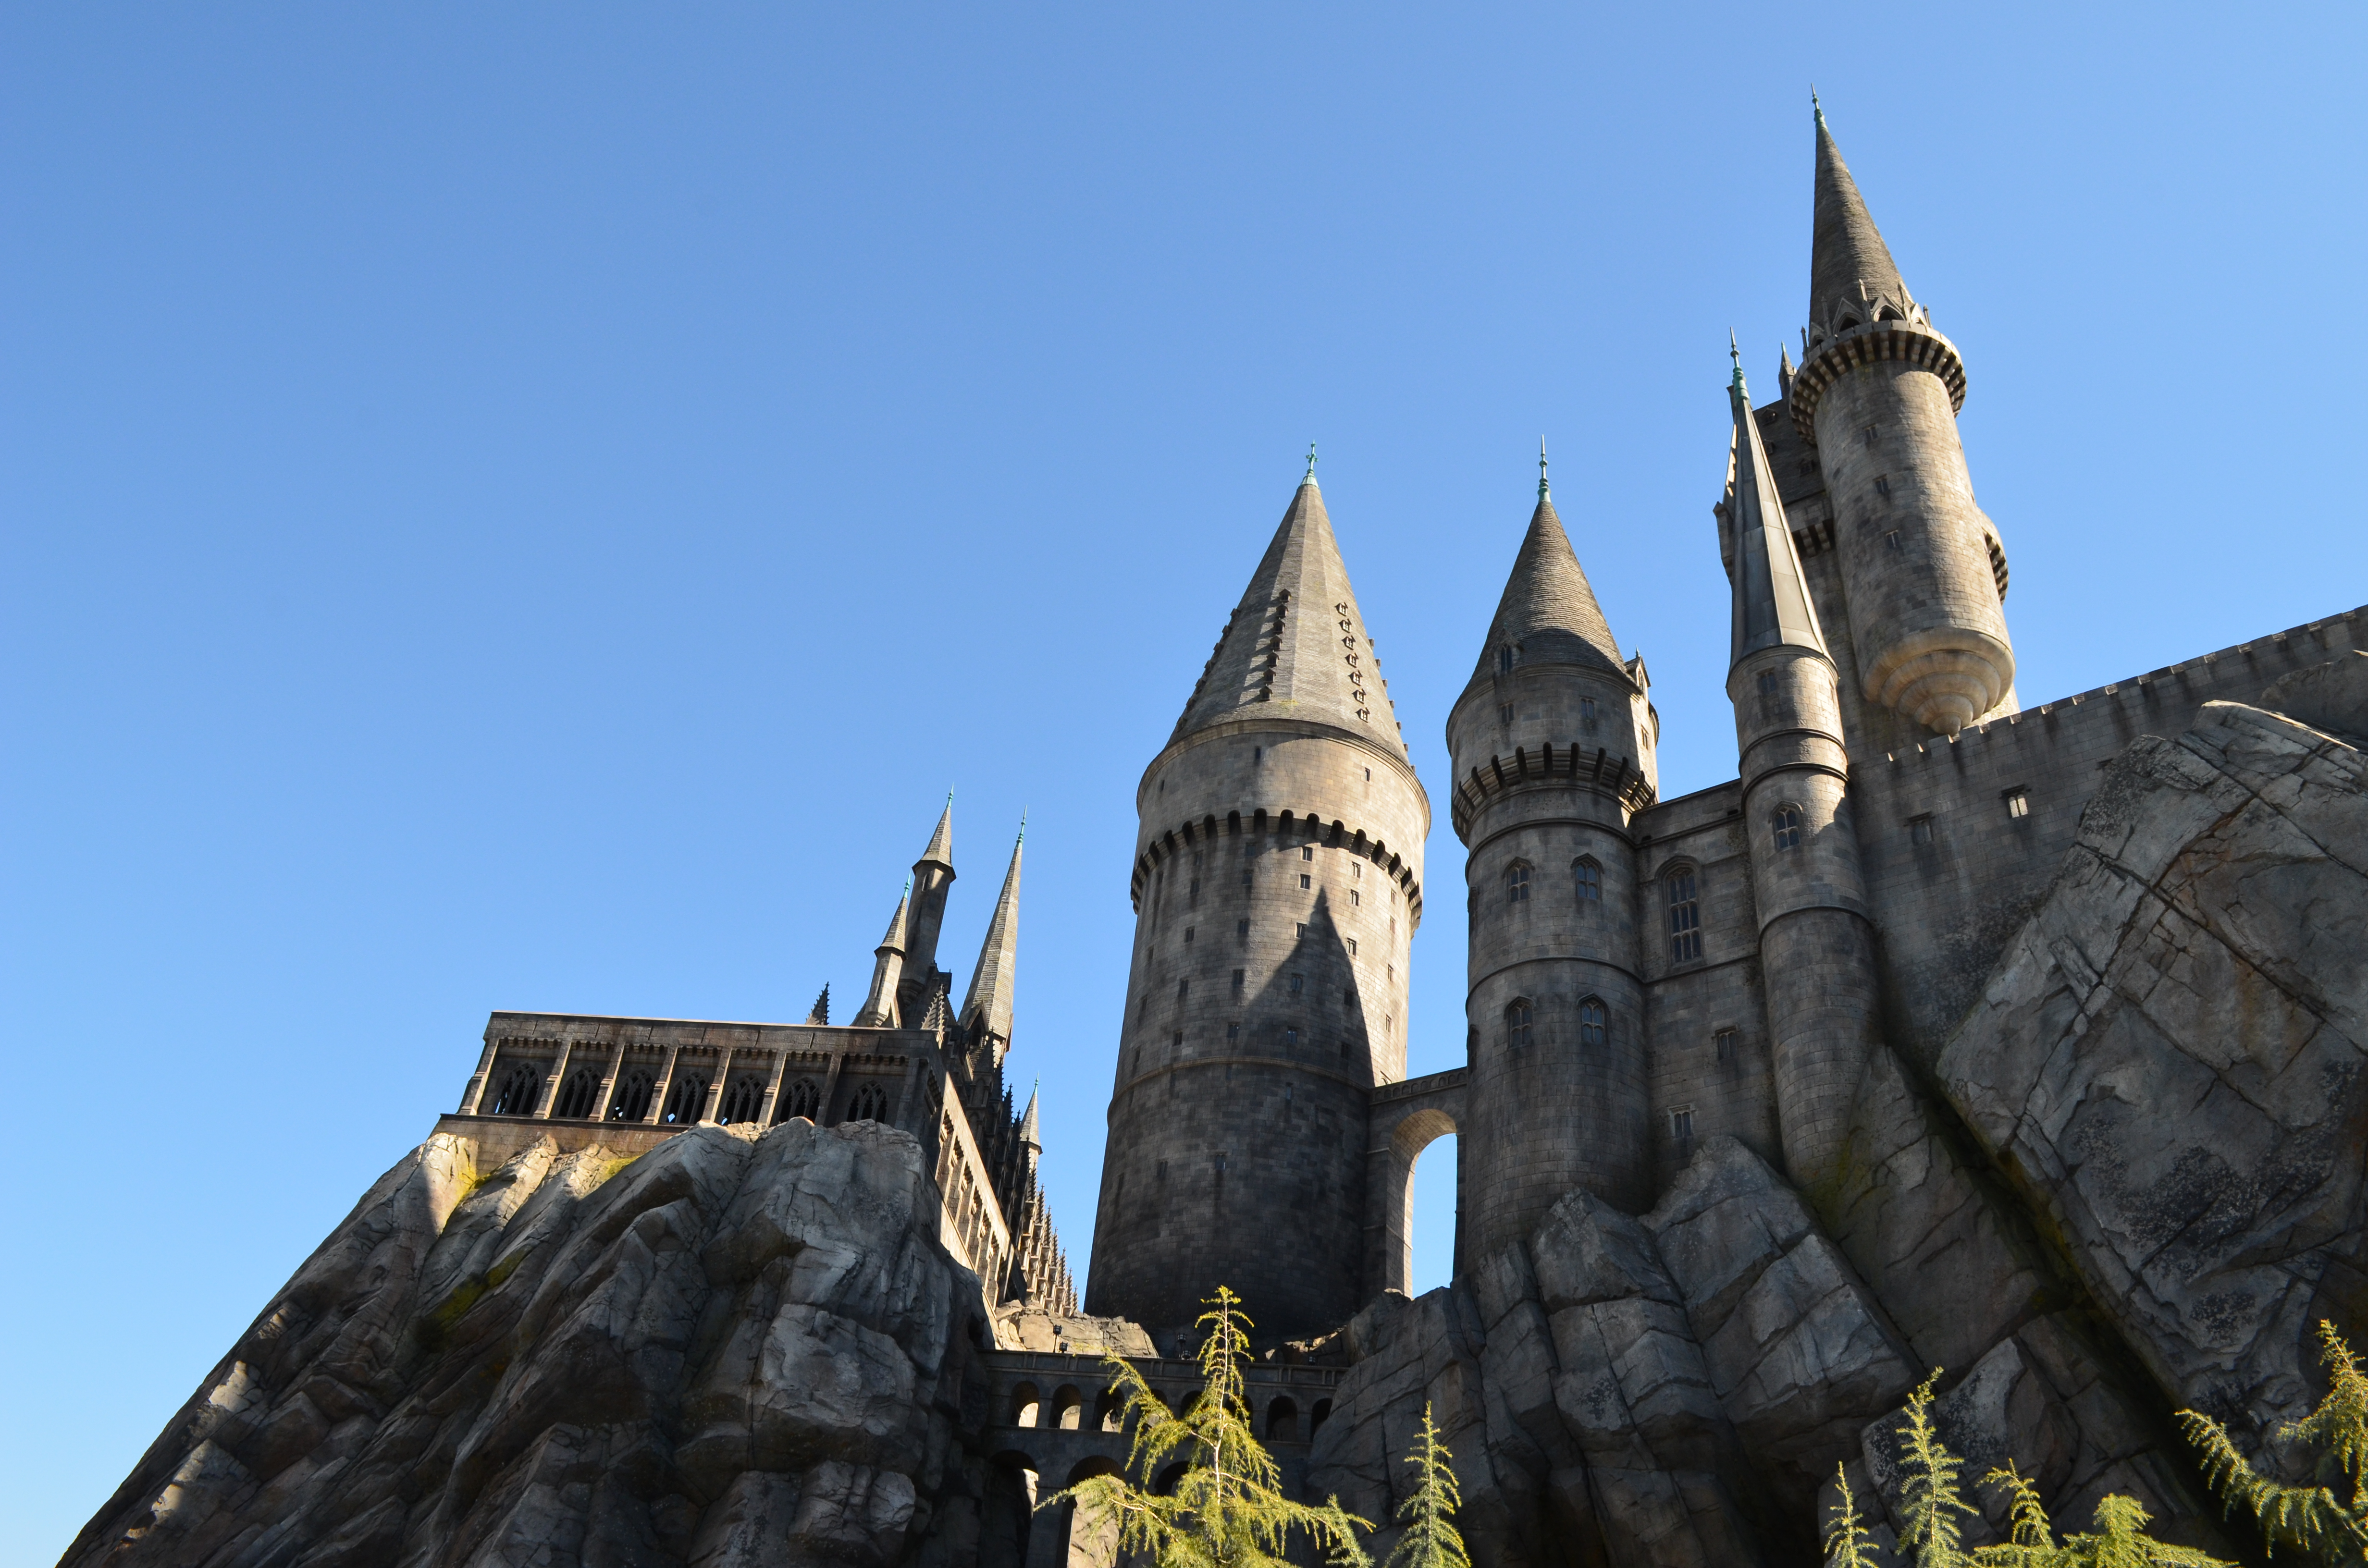 Harry Potter Universal Studios Hollywood.JPG